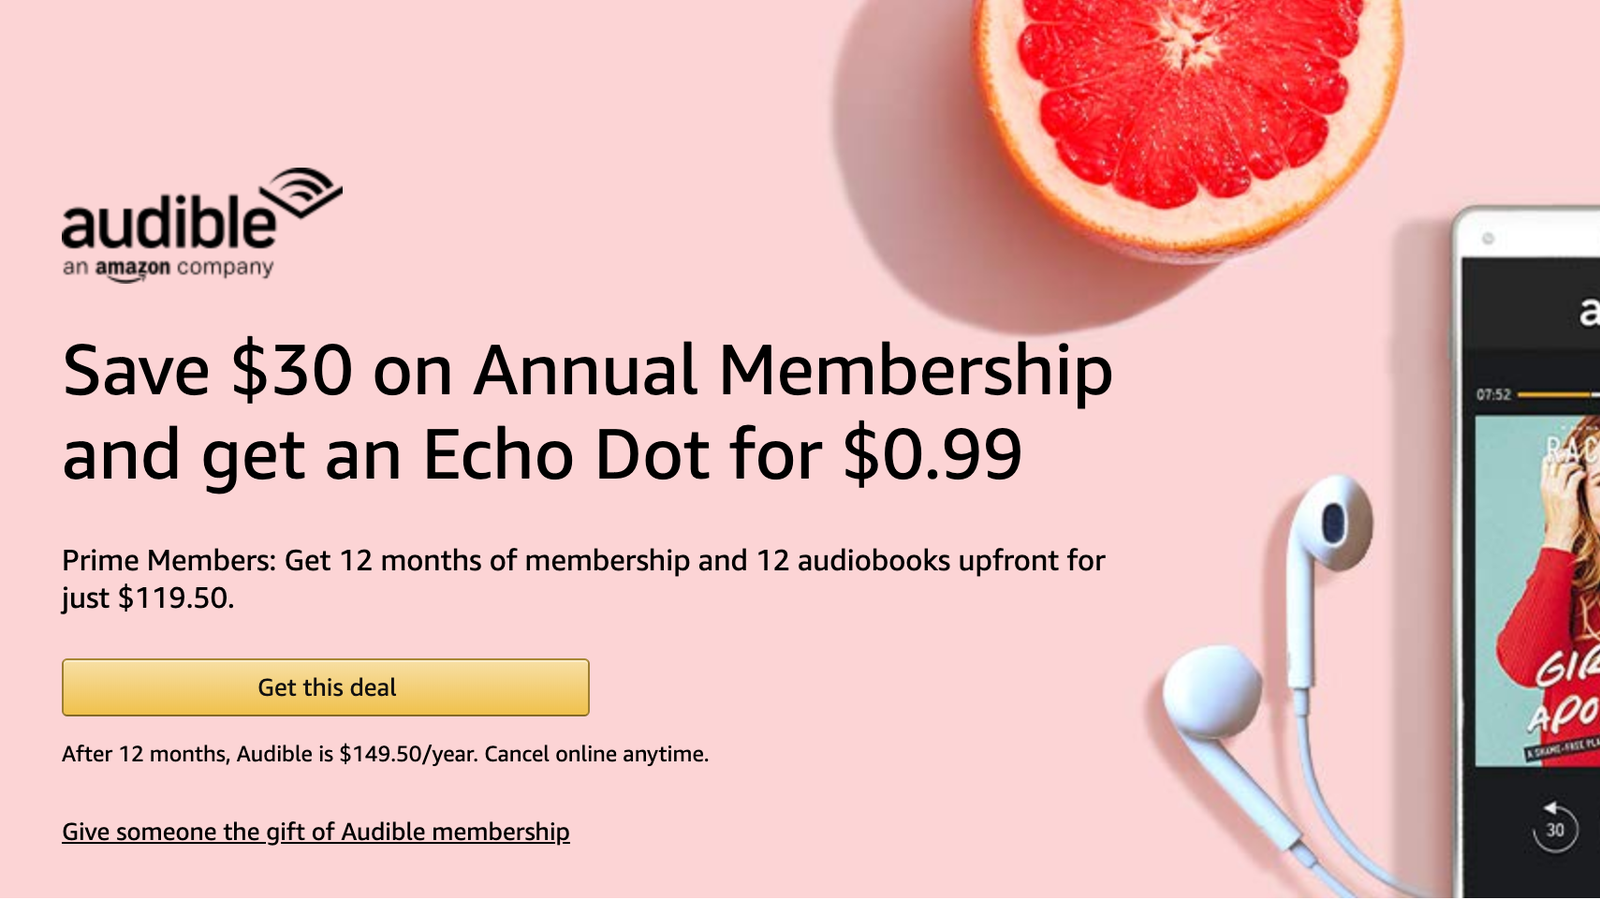 This Annual Audible Membership Deal Is Even Available For